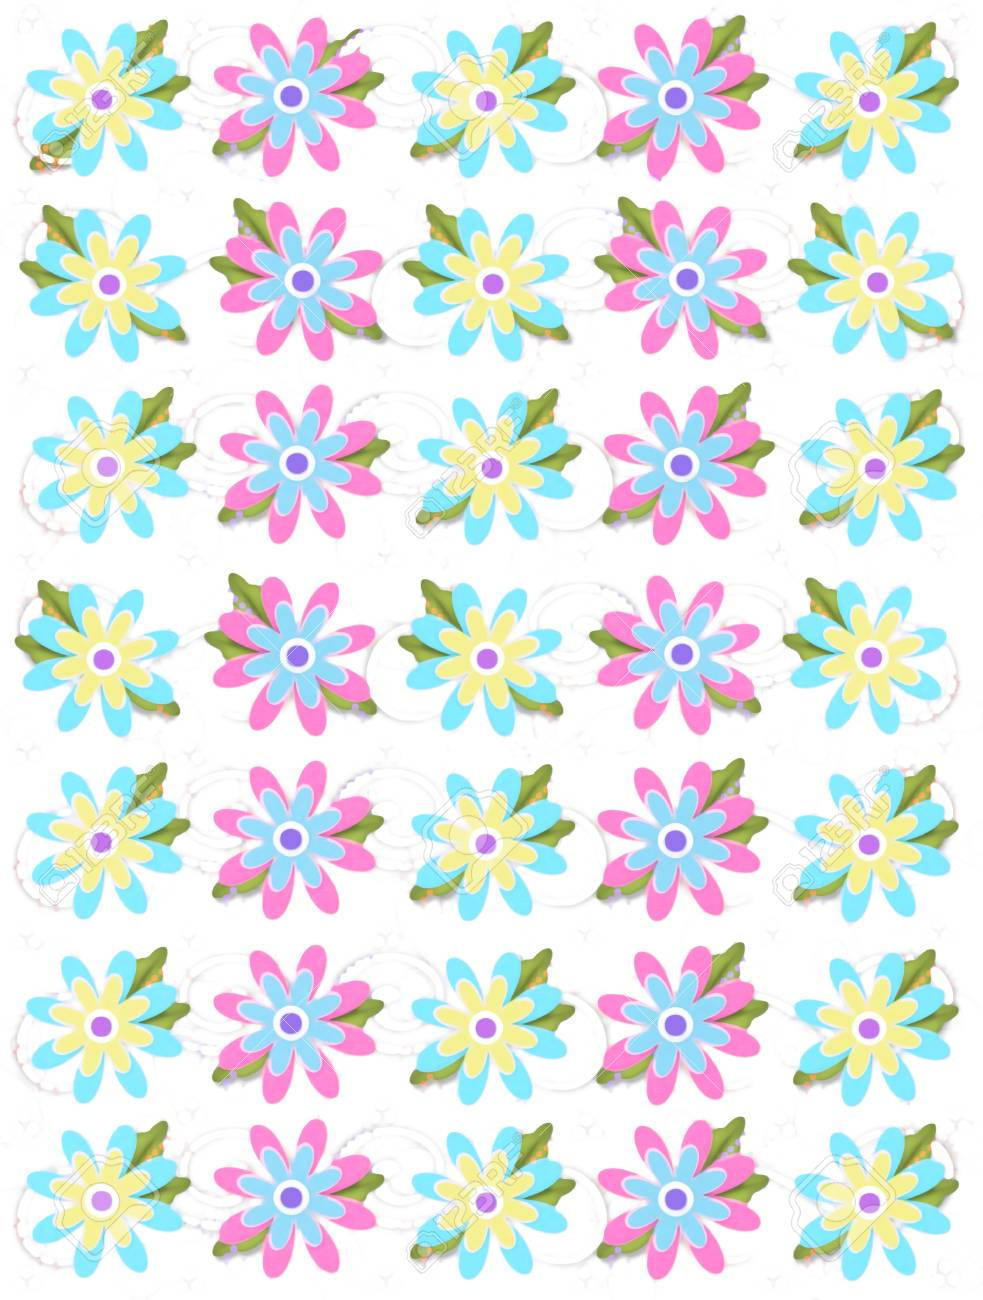 Layered daisies sit on background of curls and polka dots.  Sprigs of beads and leaves spring from flowers base. Stock Photo - 17407301